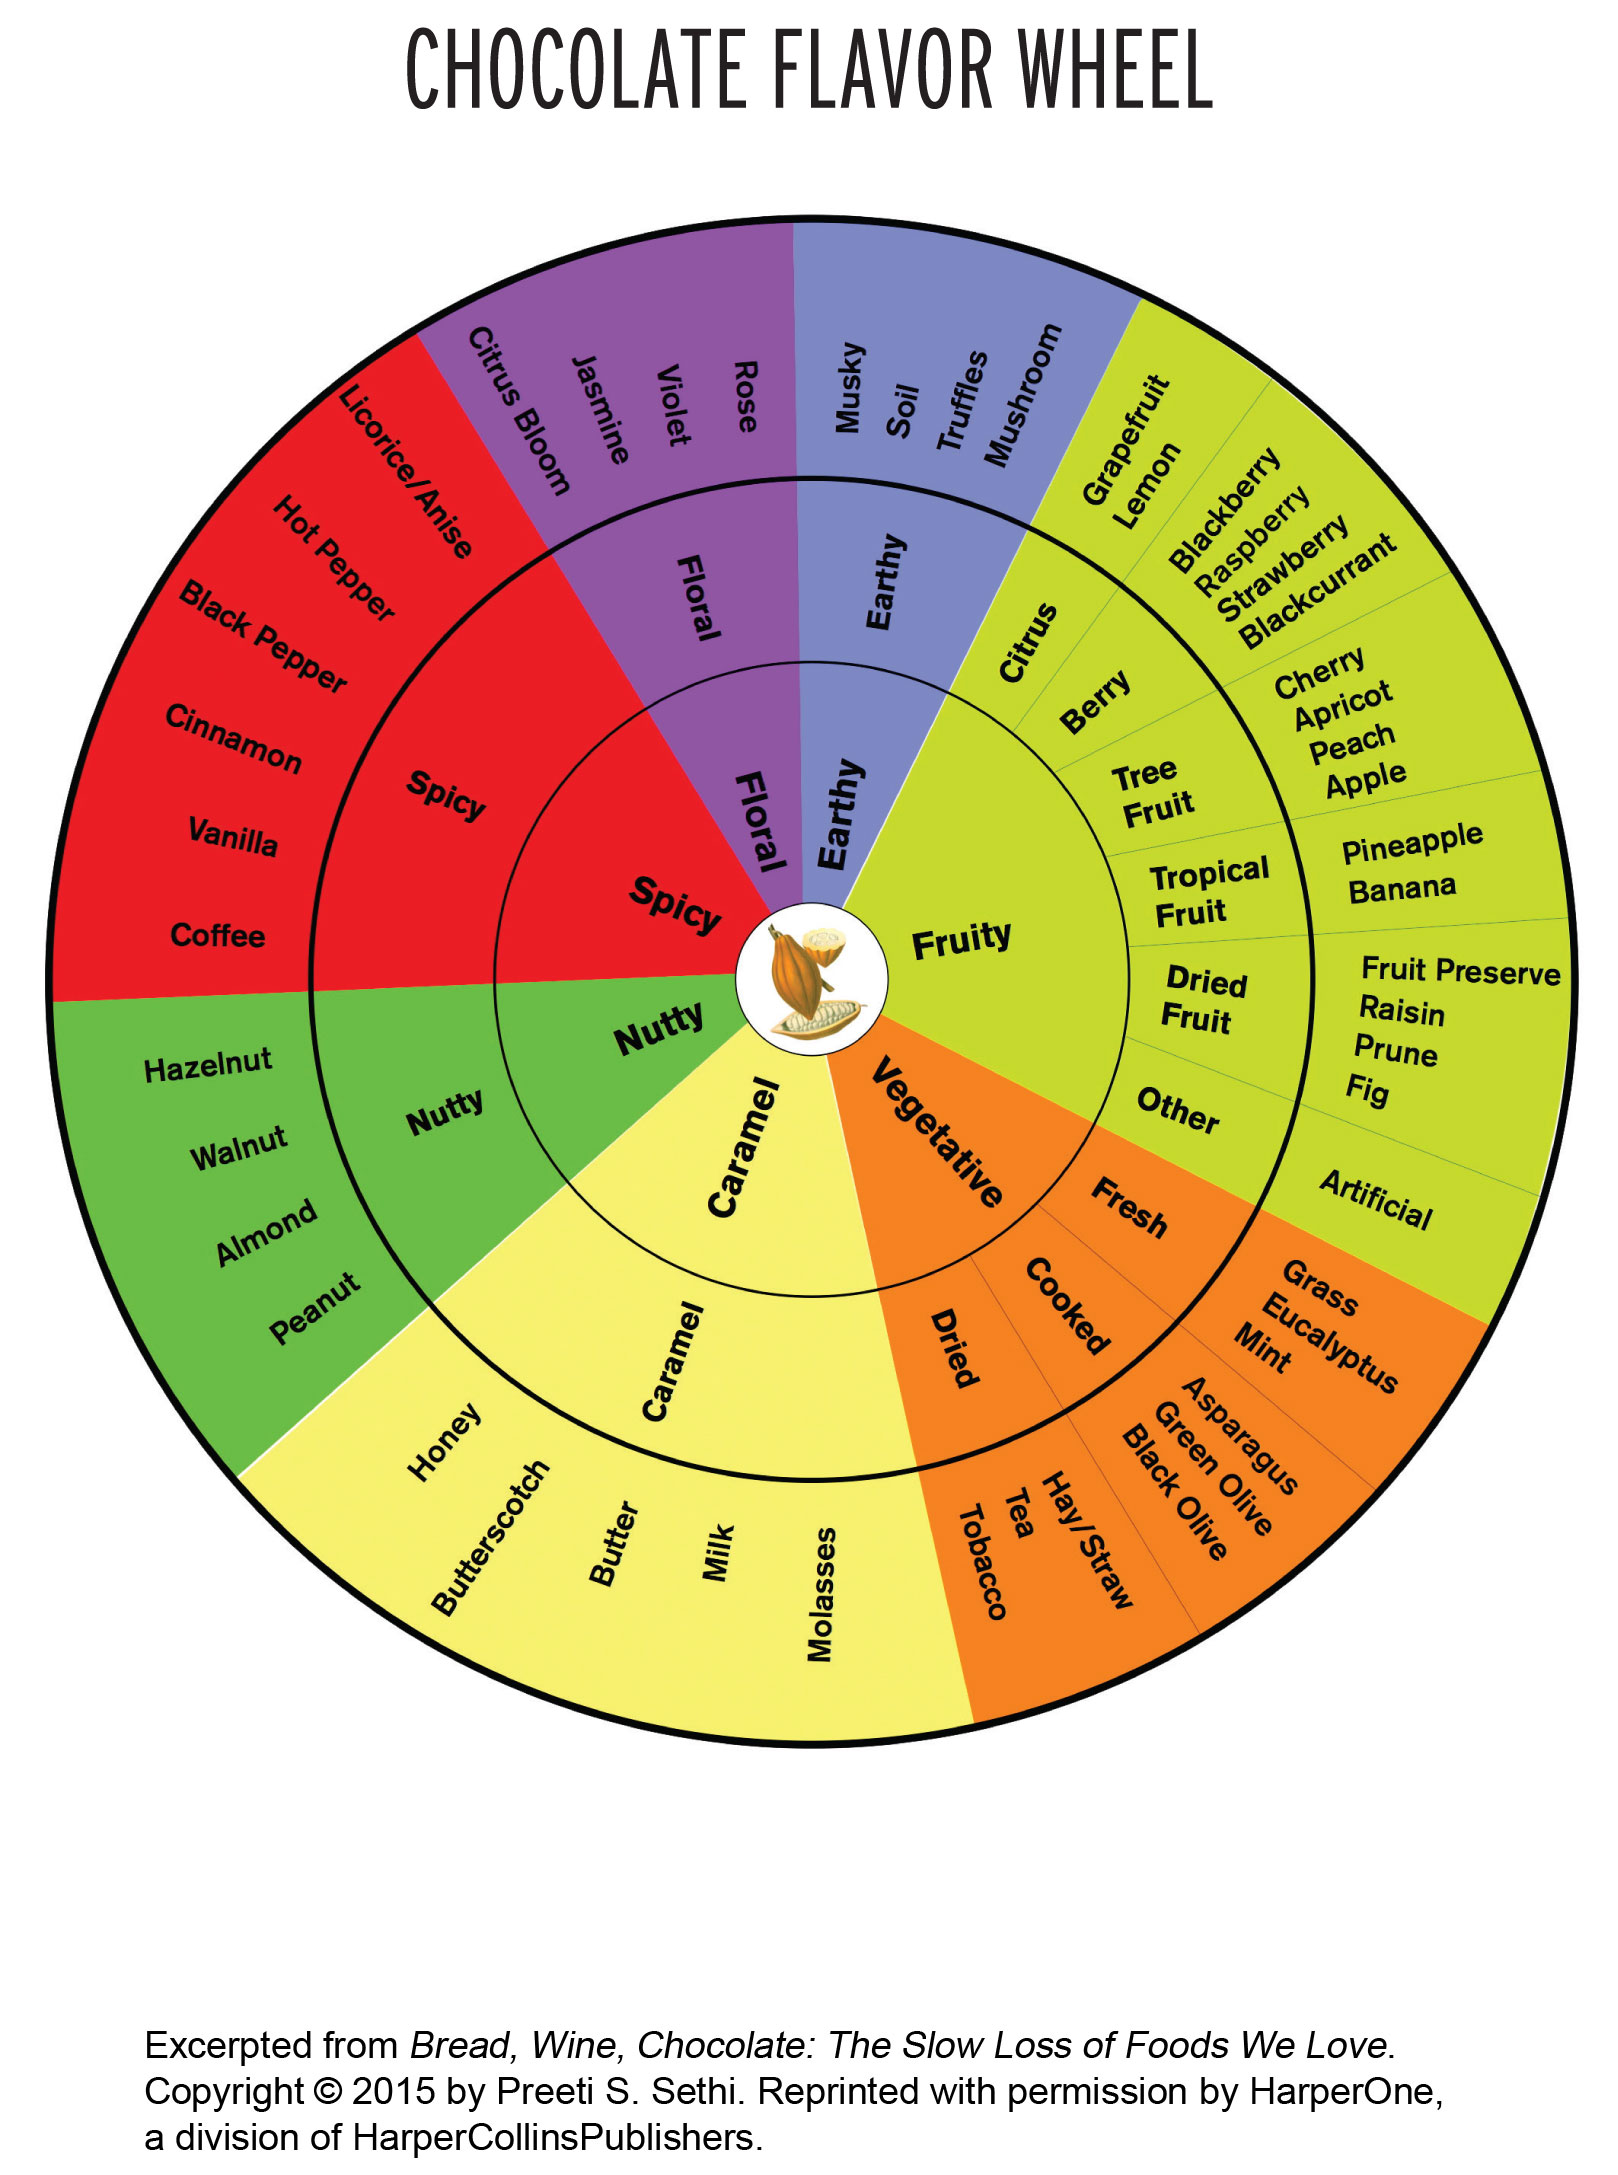 Chocolate Flavor Wheel